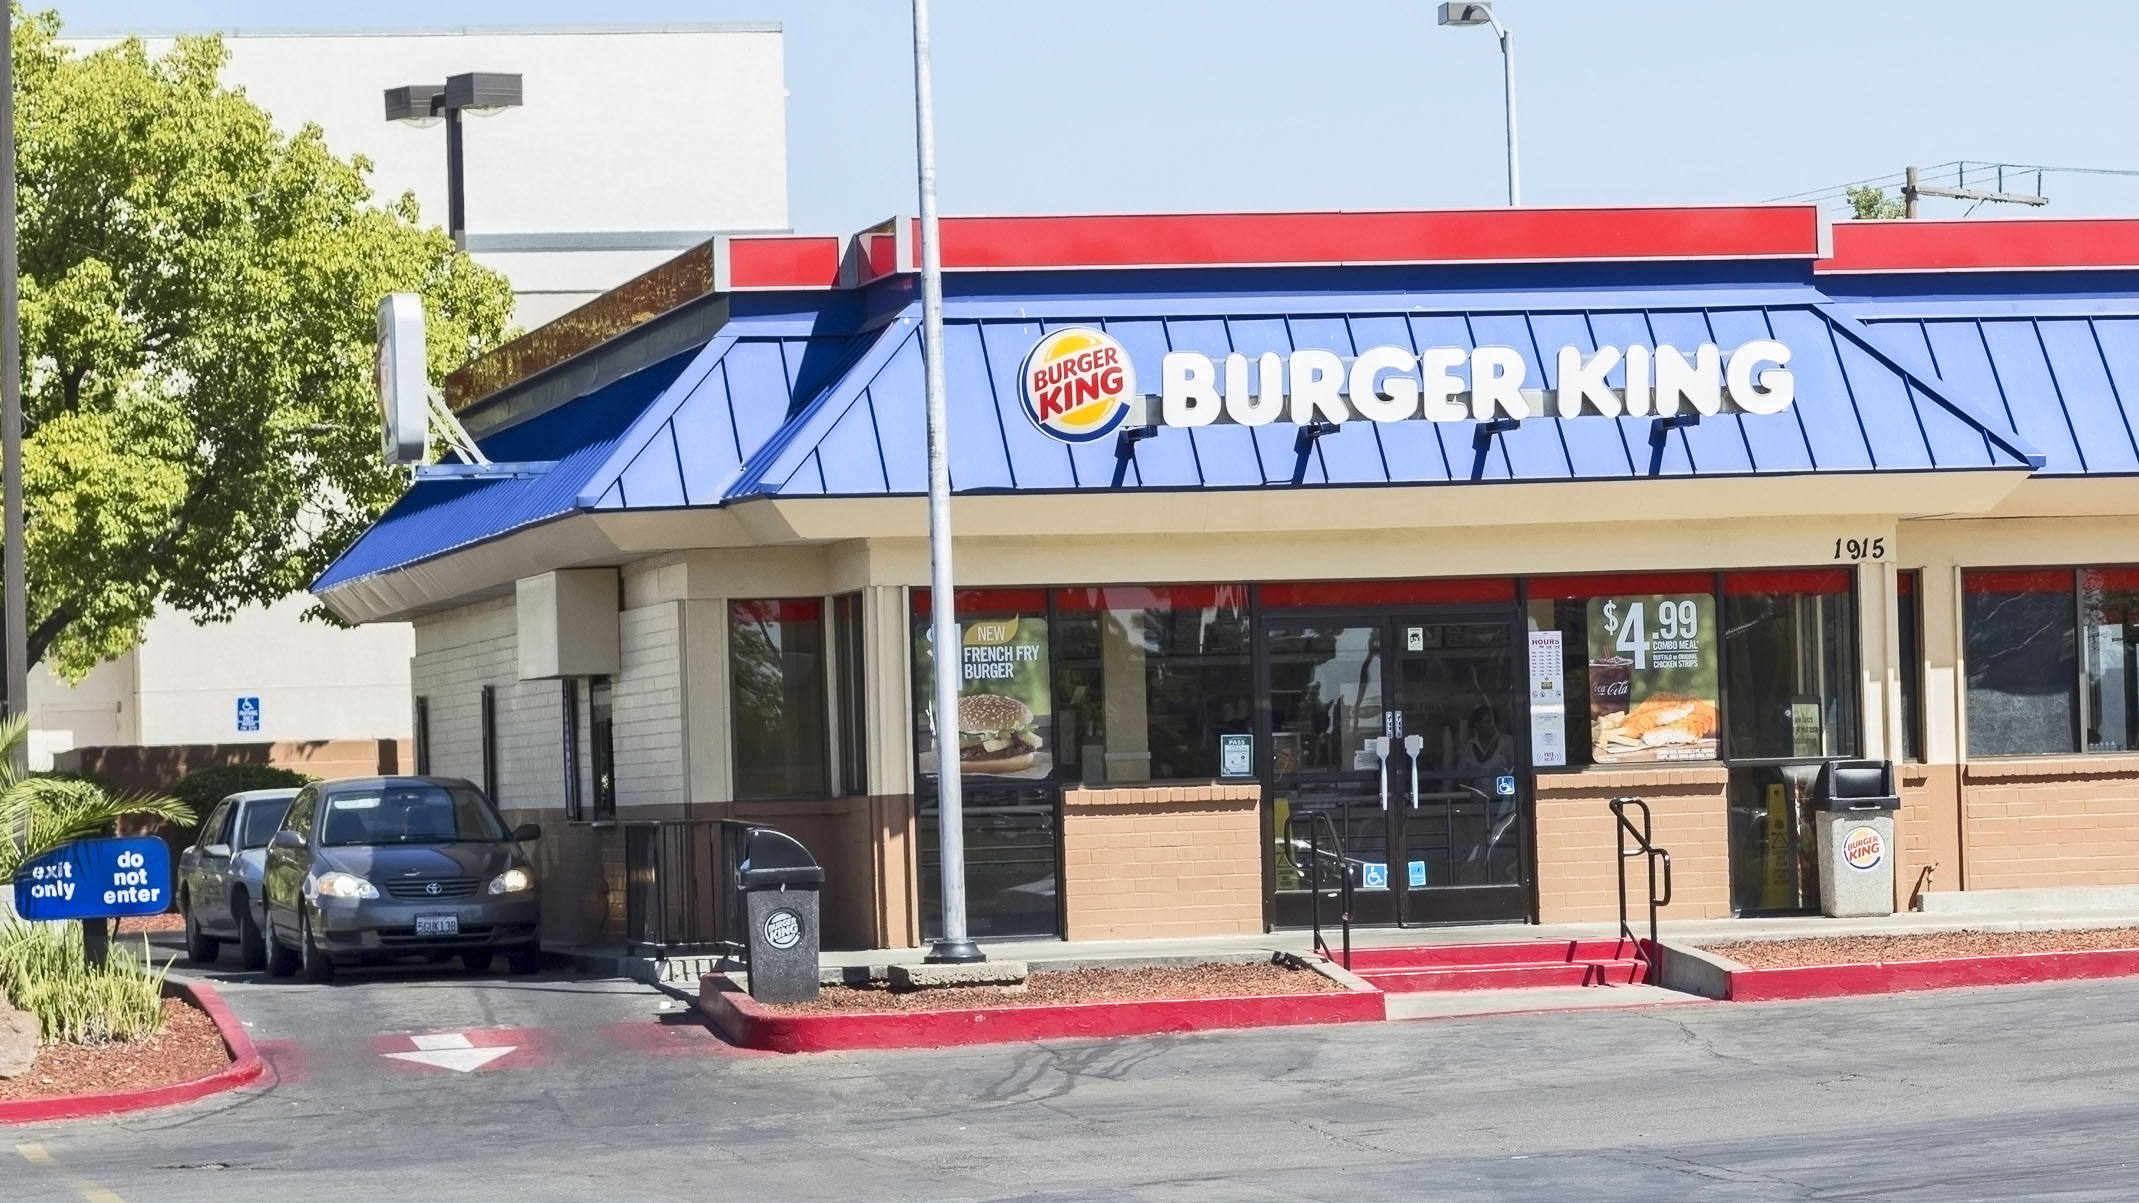 Westlake Legal Group burger-king-drive-thru Burger King employees fired after police officer served food with a pig drawn on it Michael Hollan fox-news/food-drink/food/fast-food fox news fnc/food-drink fnc fe015abc-3def-5cc4-9174-6ca414111d70 article